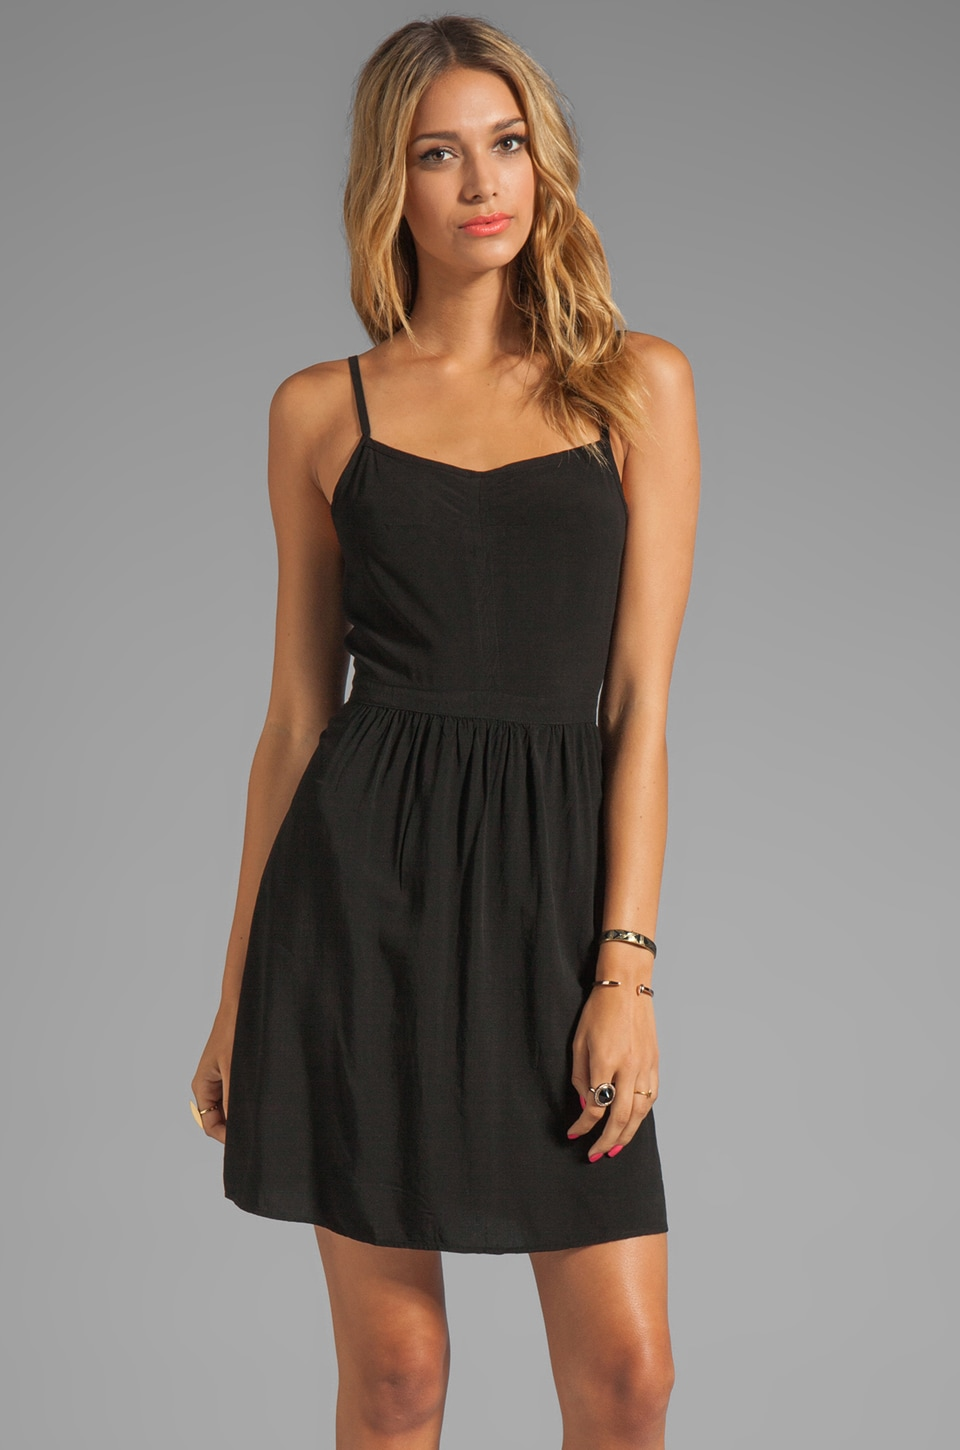 Splendid Tank Dress in Black